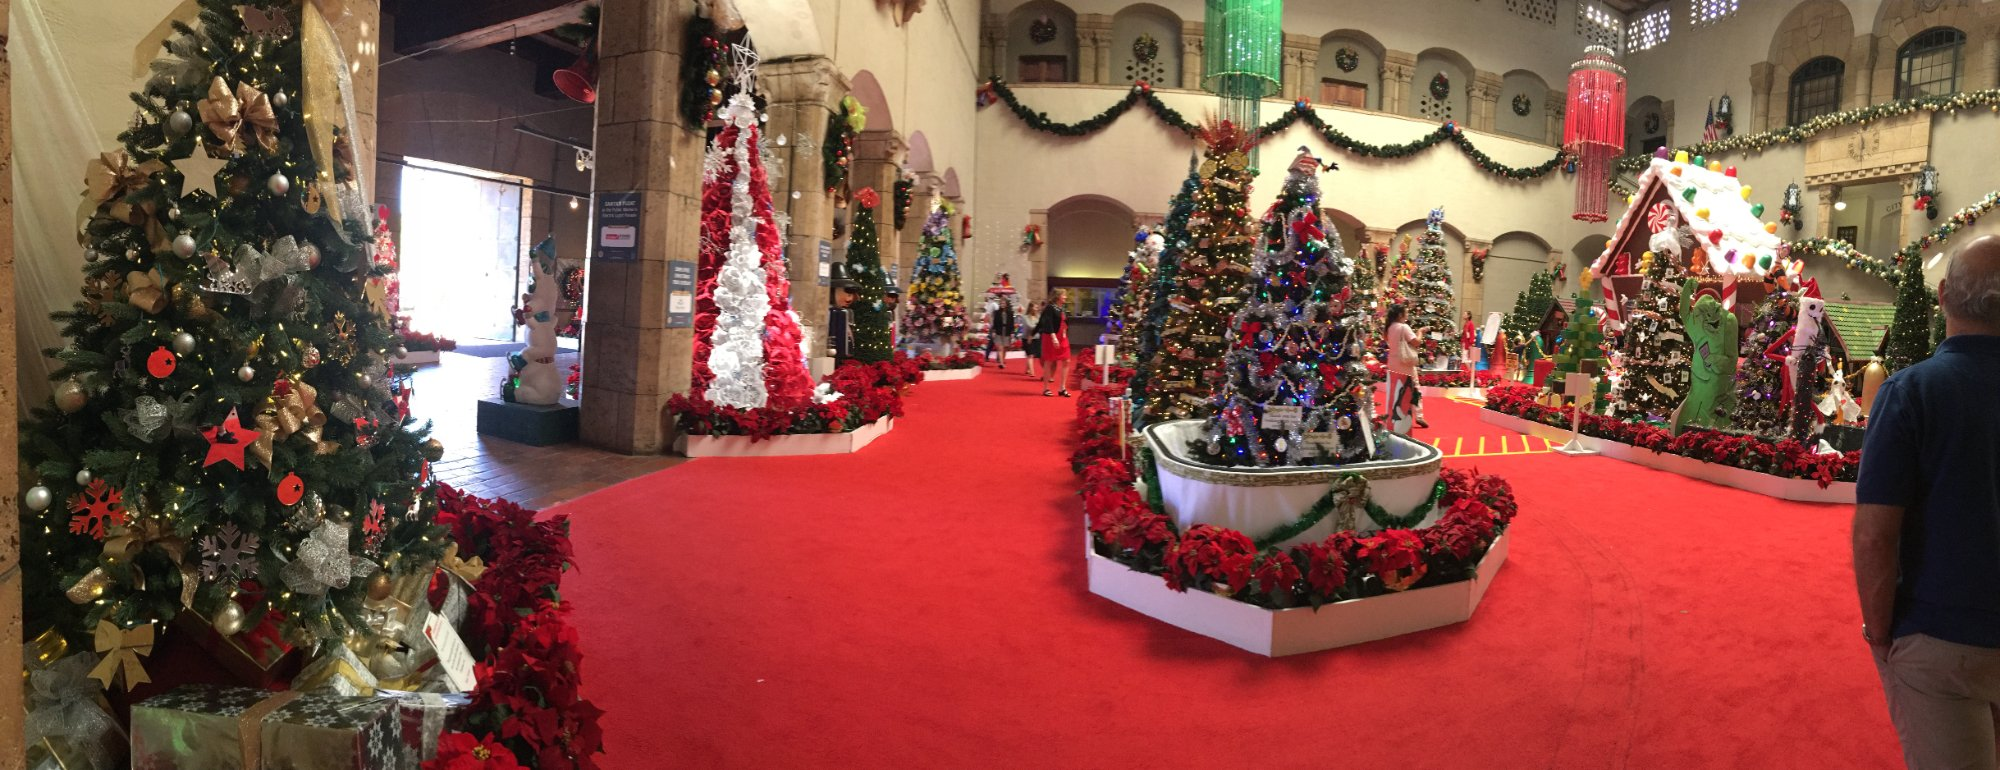 Holiday display in the city building of Honolulu